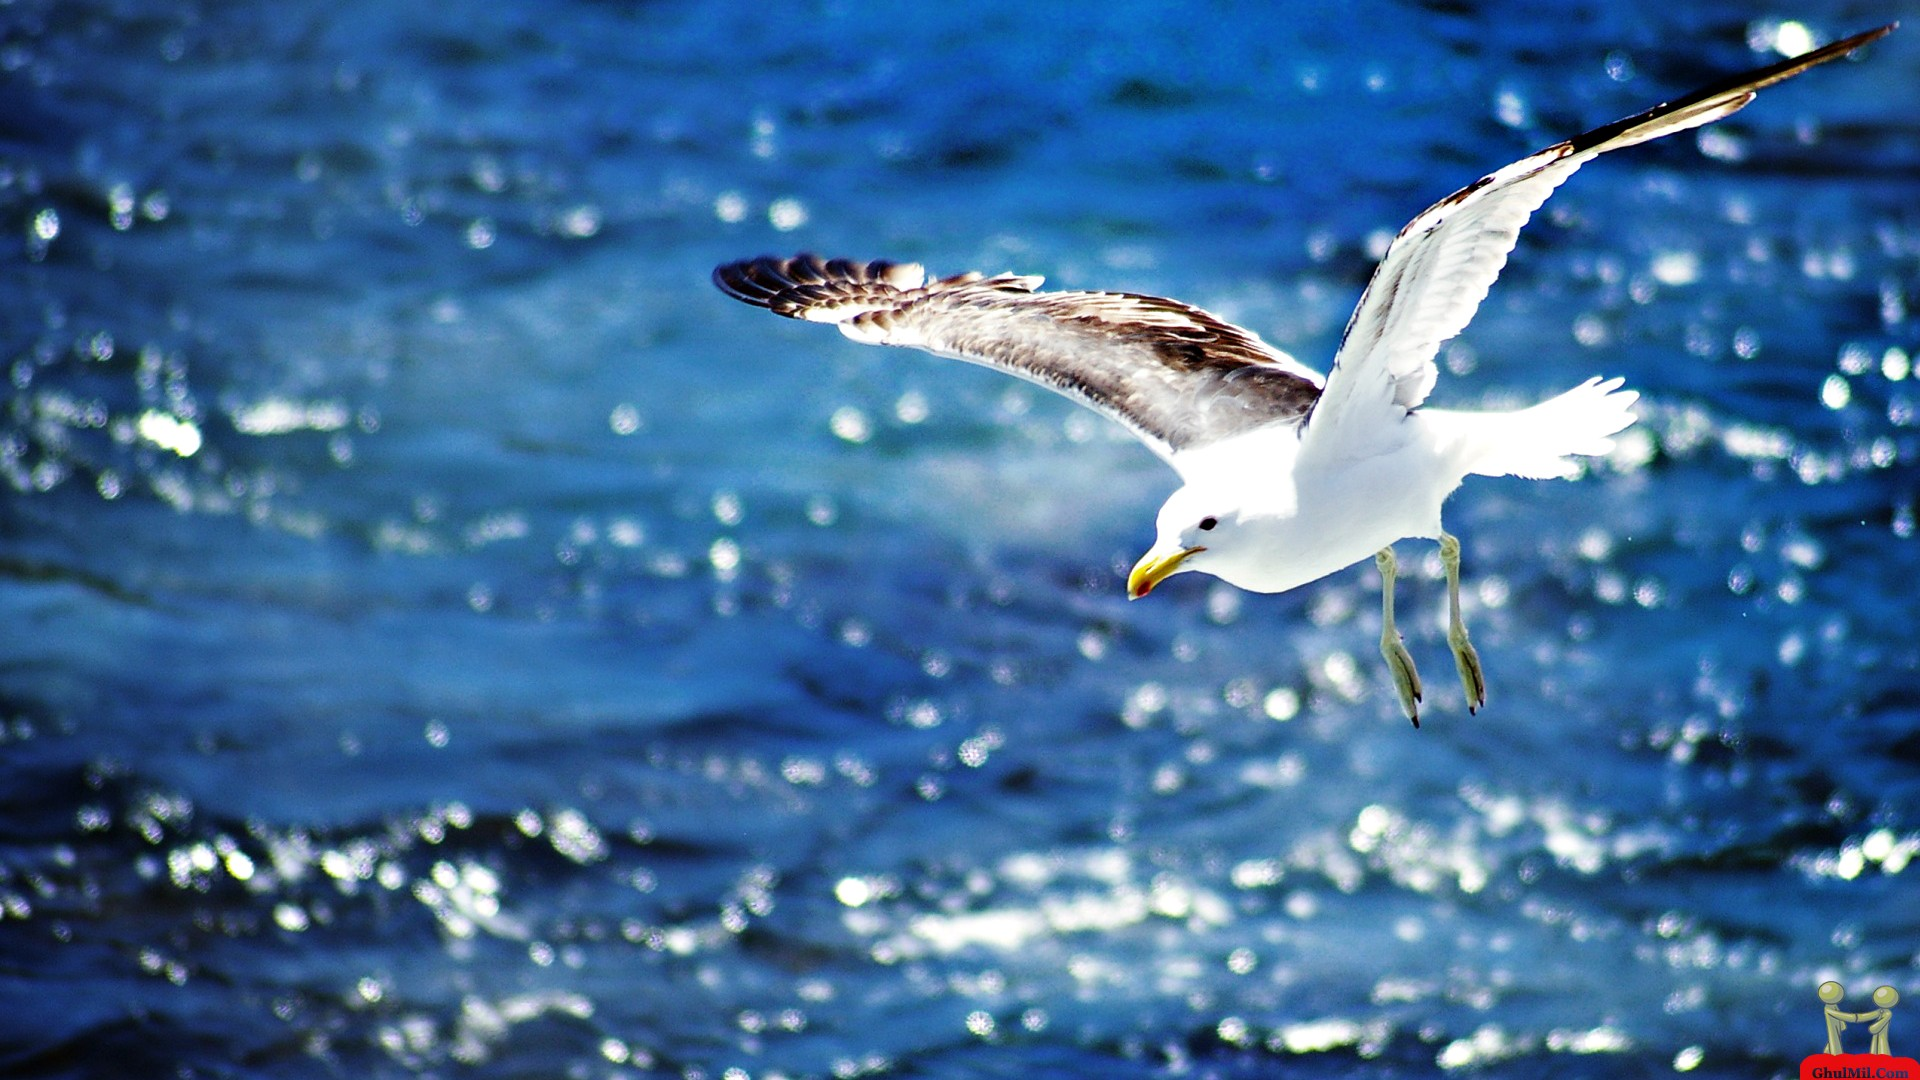 Beautiful Flying Seagull HD Wallpaper E Entertainment 1920x1080